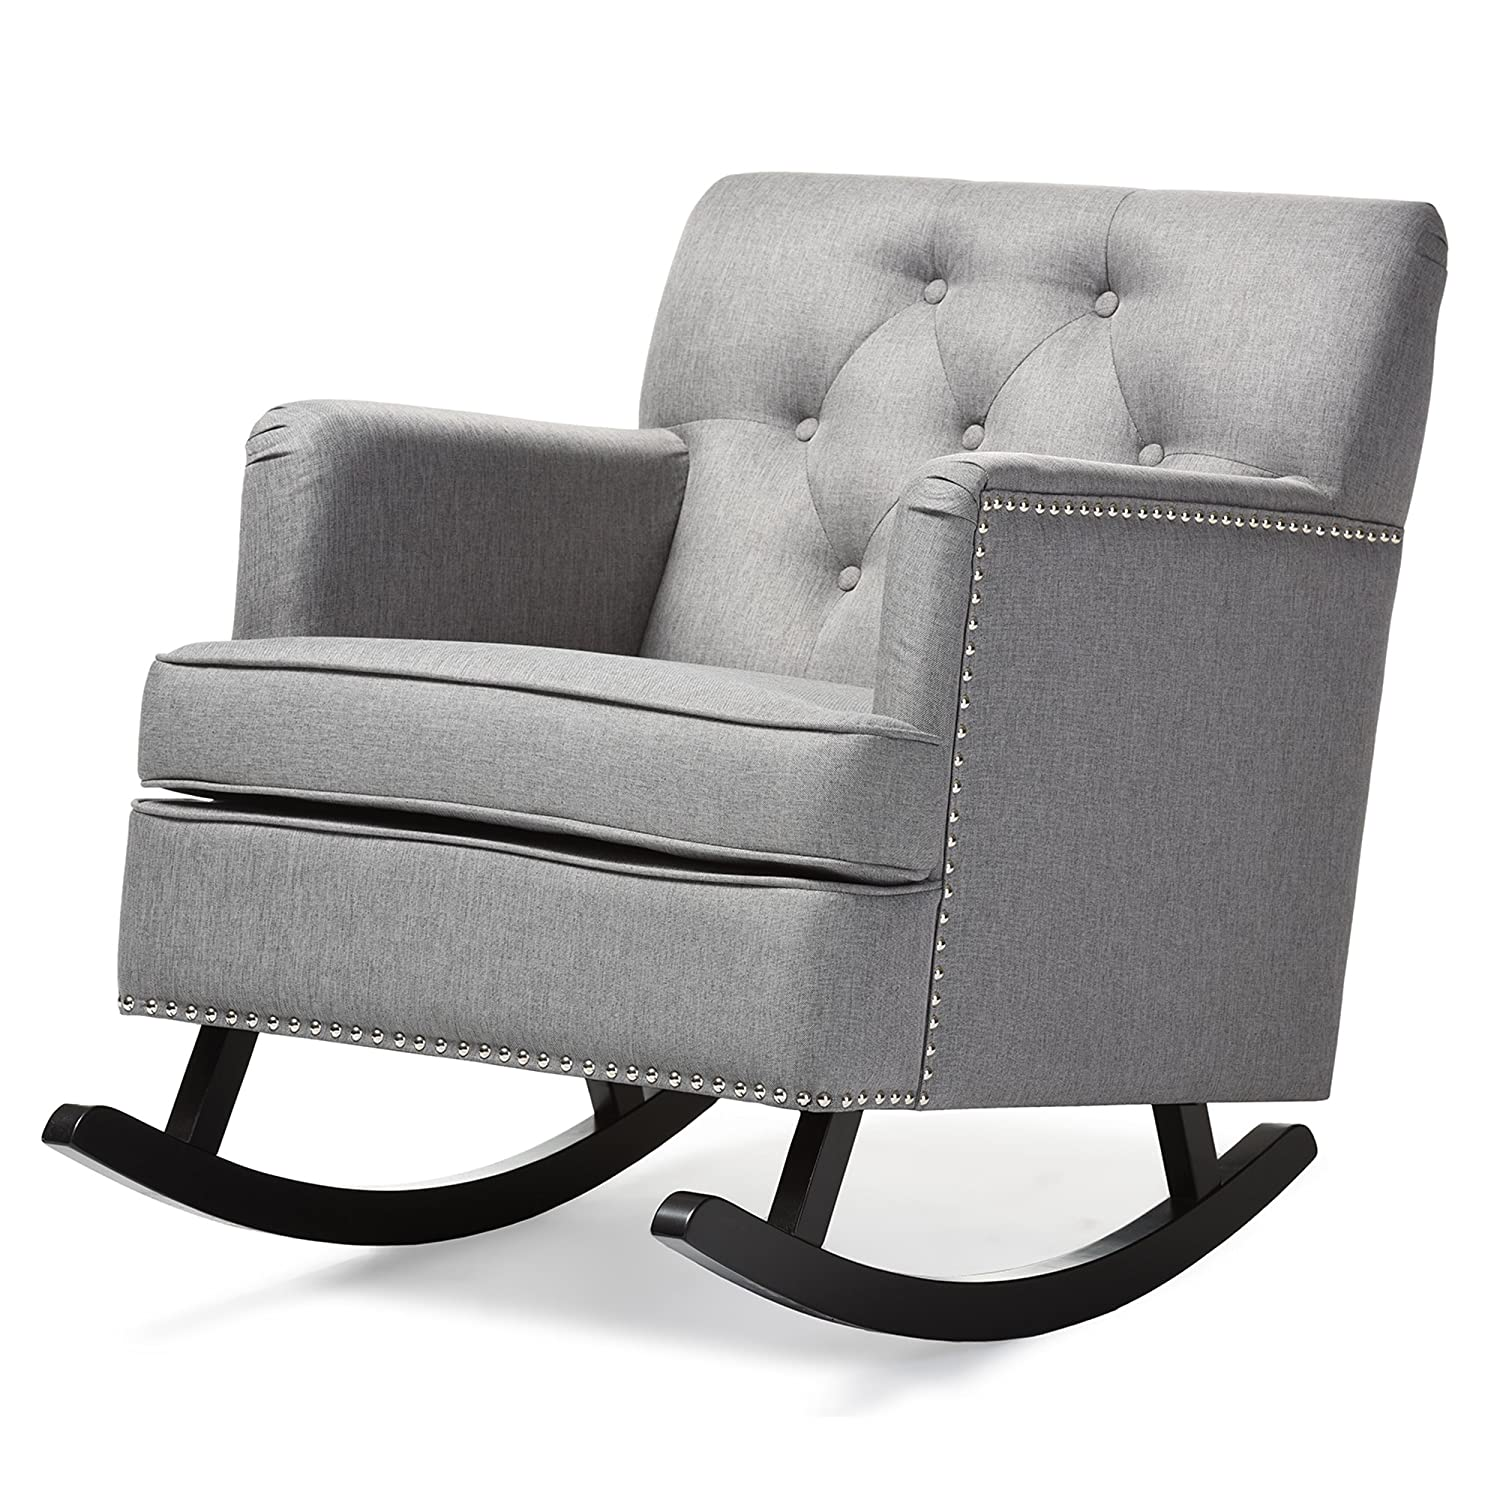 amazoncom baxton studio imperium wood and linen contemporary  - baxton studio bethany modern  contemporary fabric upholsteredbuttontufted rocking chair grey